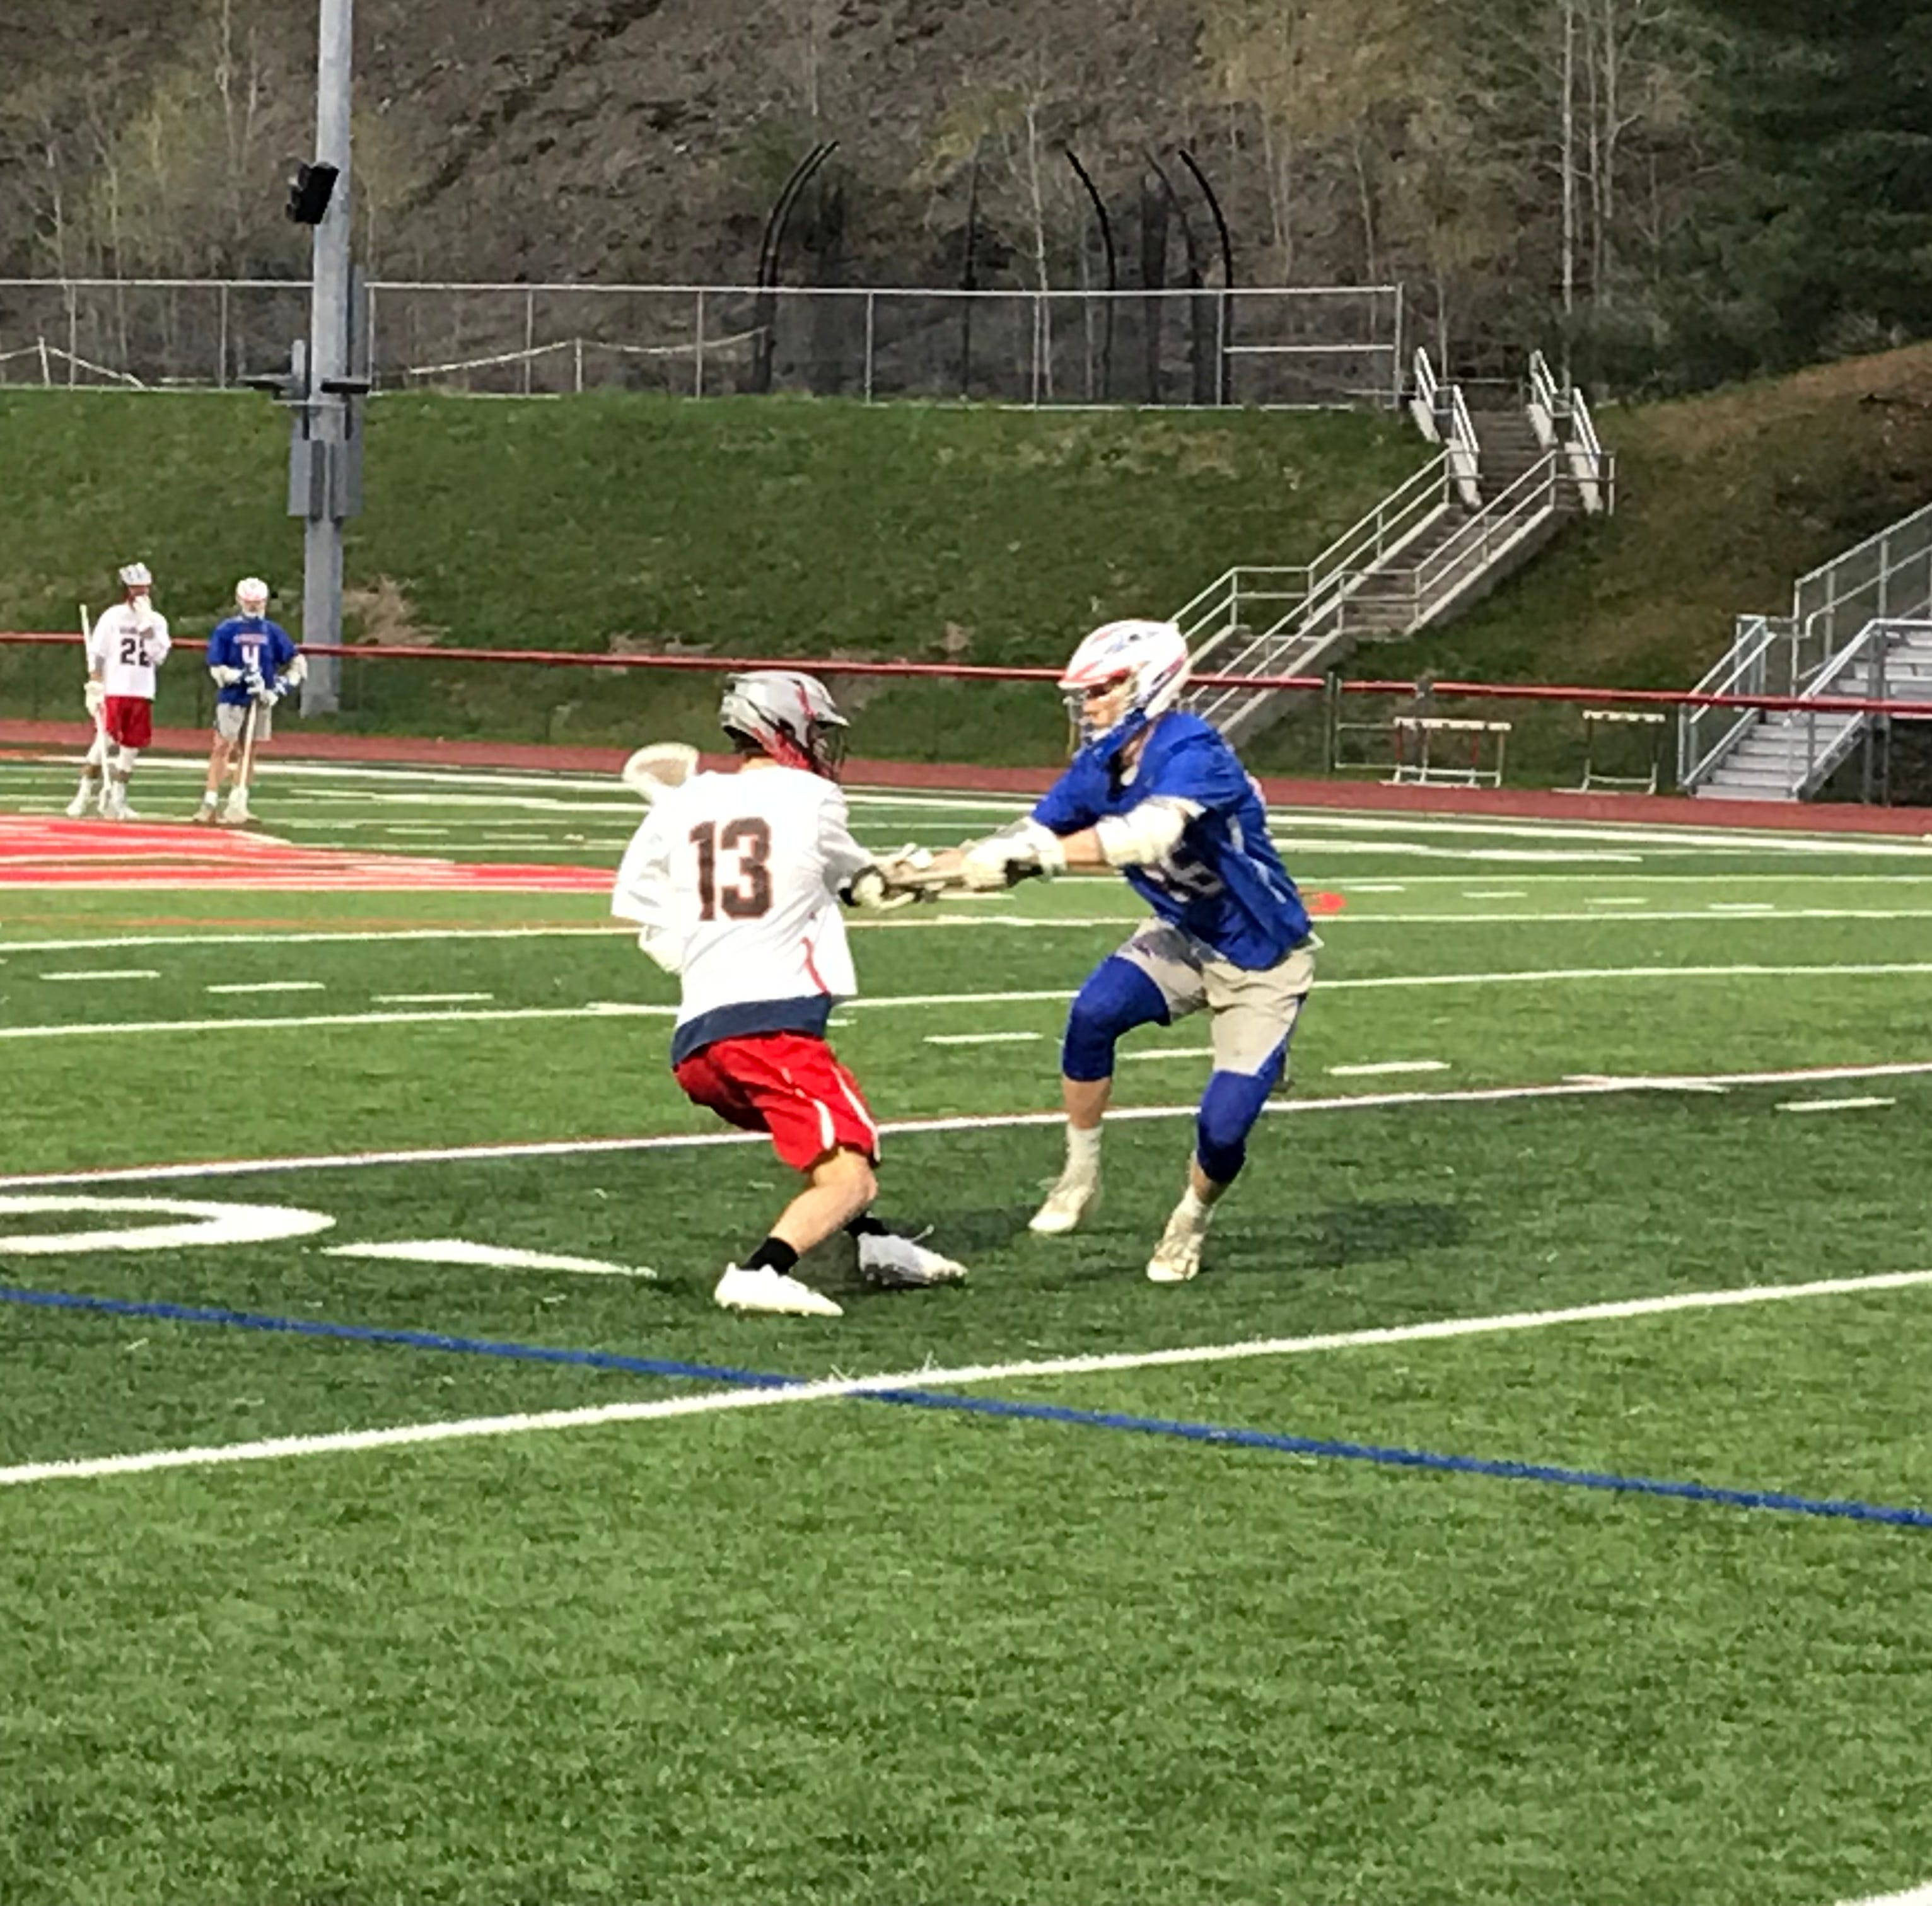 Boys Lacrosse: Kinney's big night leads Owego to victory at CV